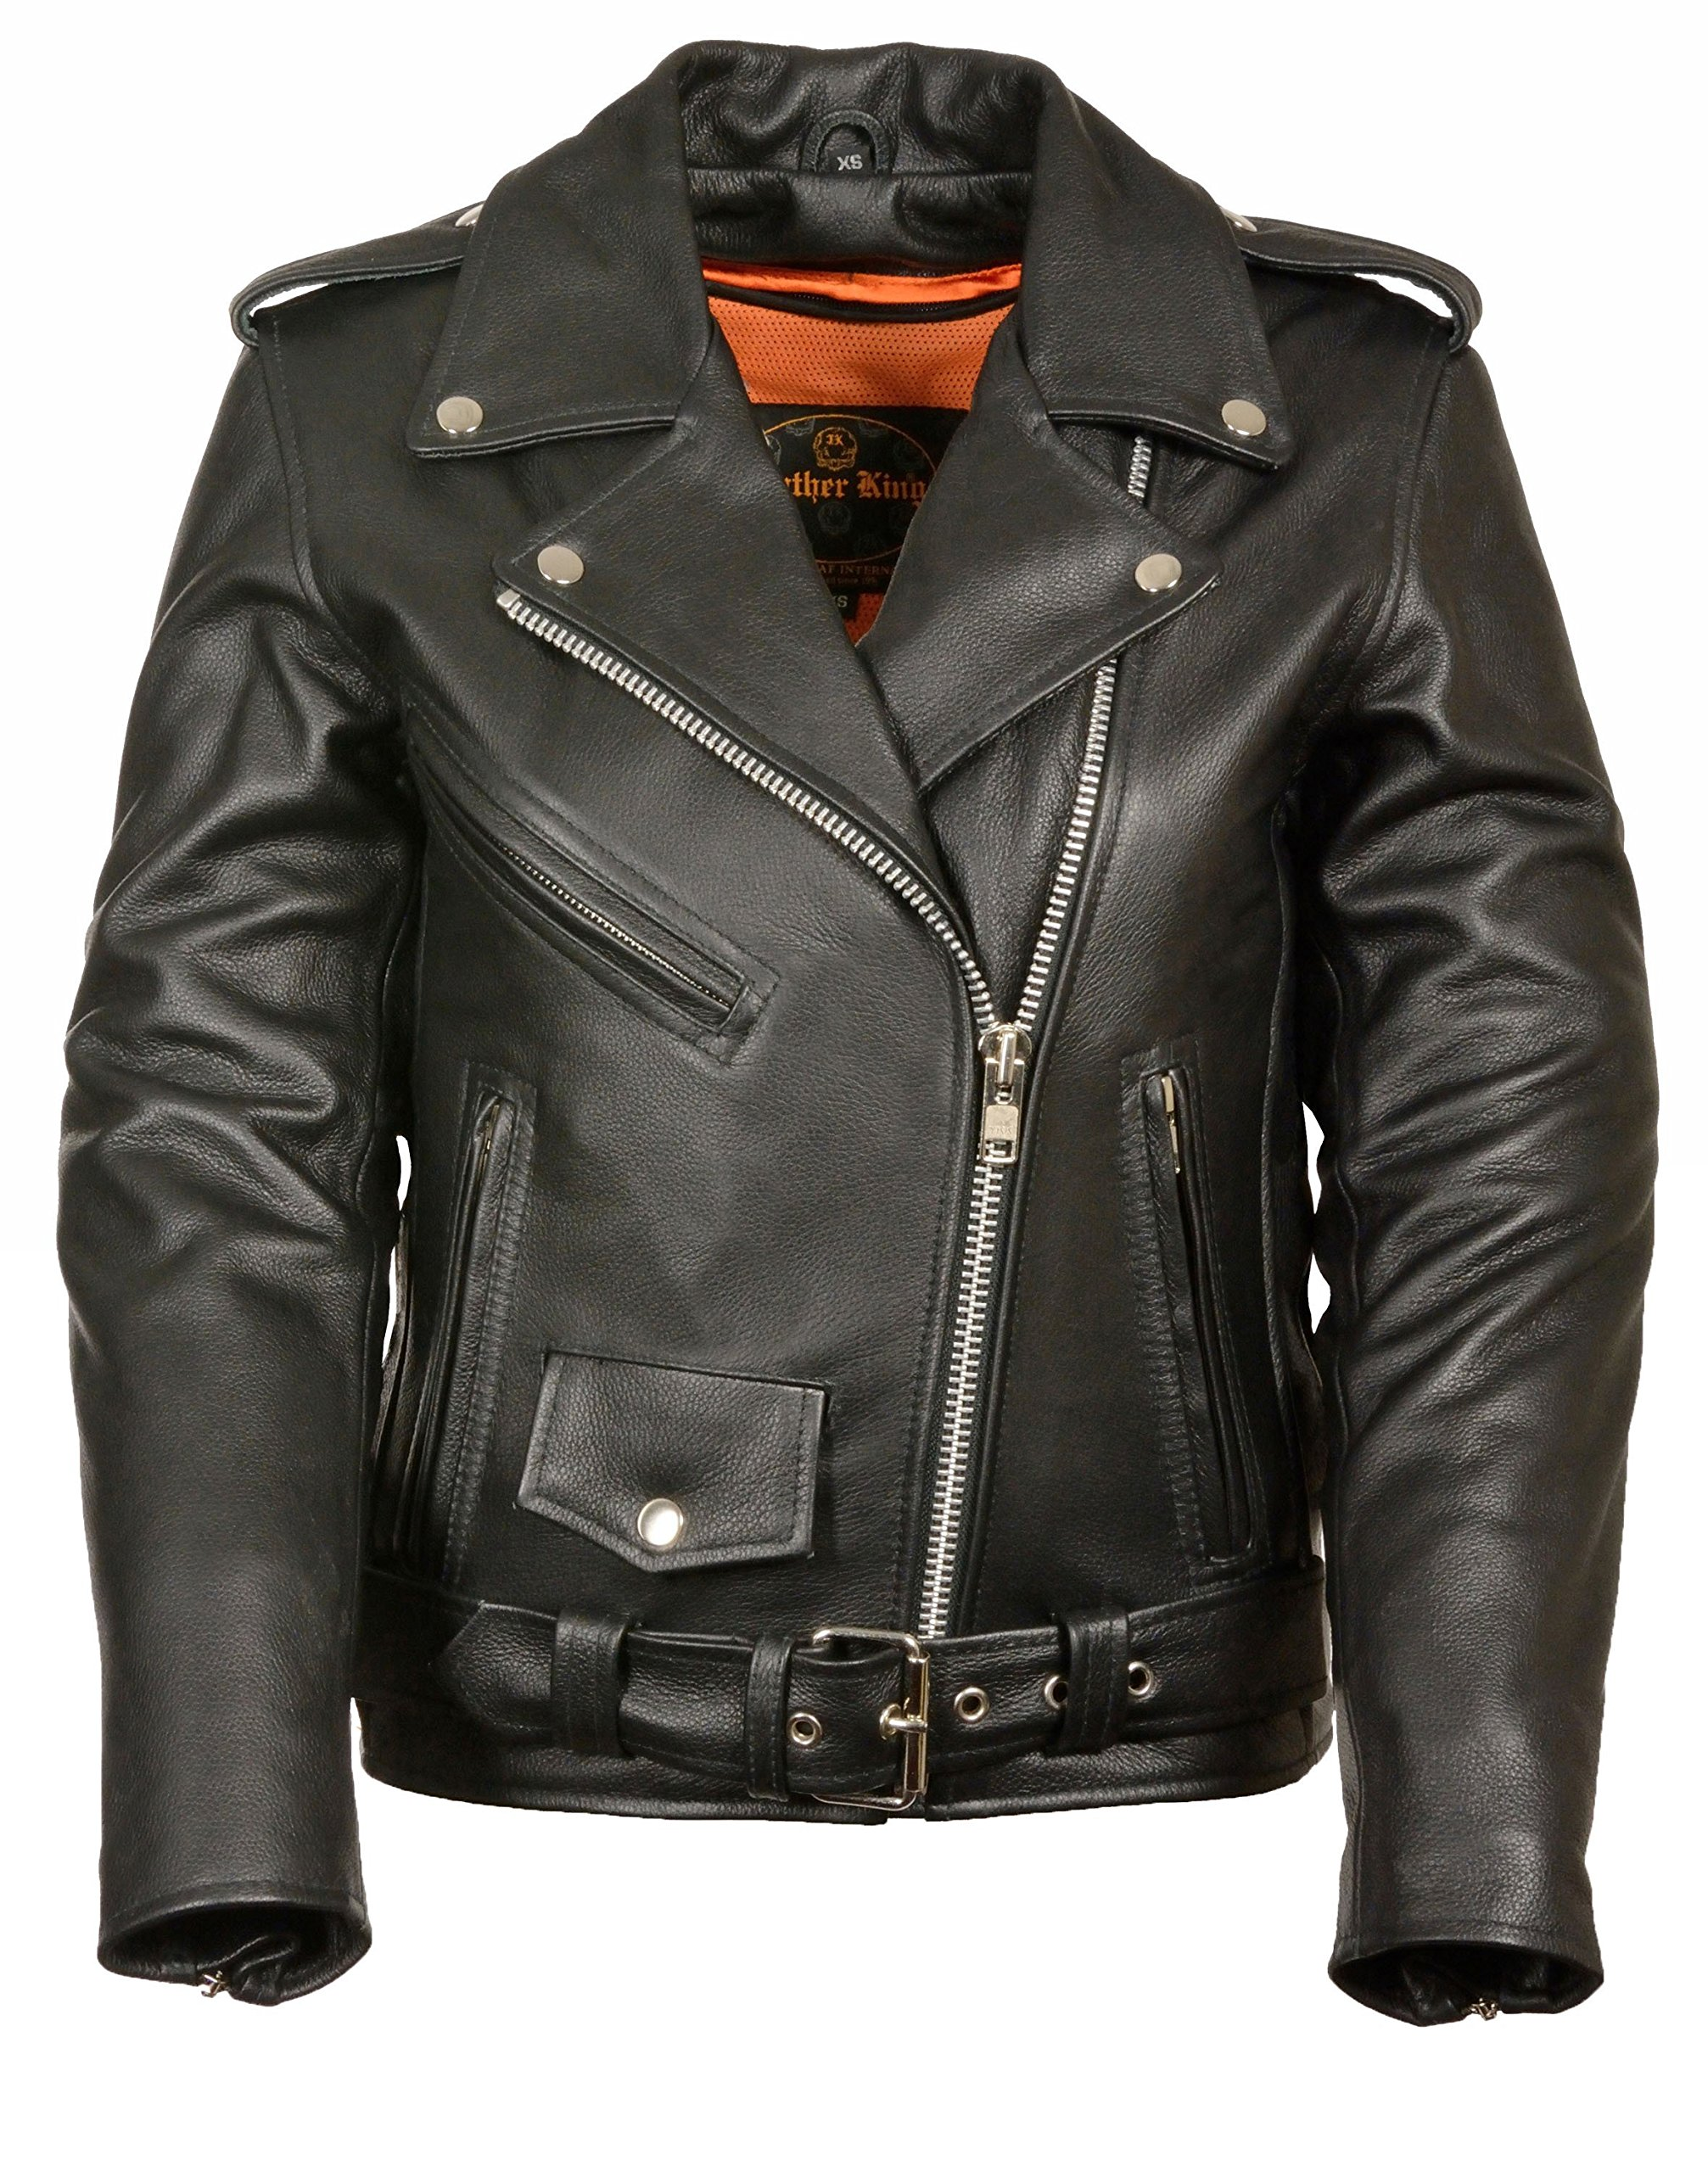 Womens Classic Leather Motorcycle Jacket, Black Size M